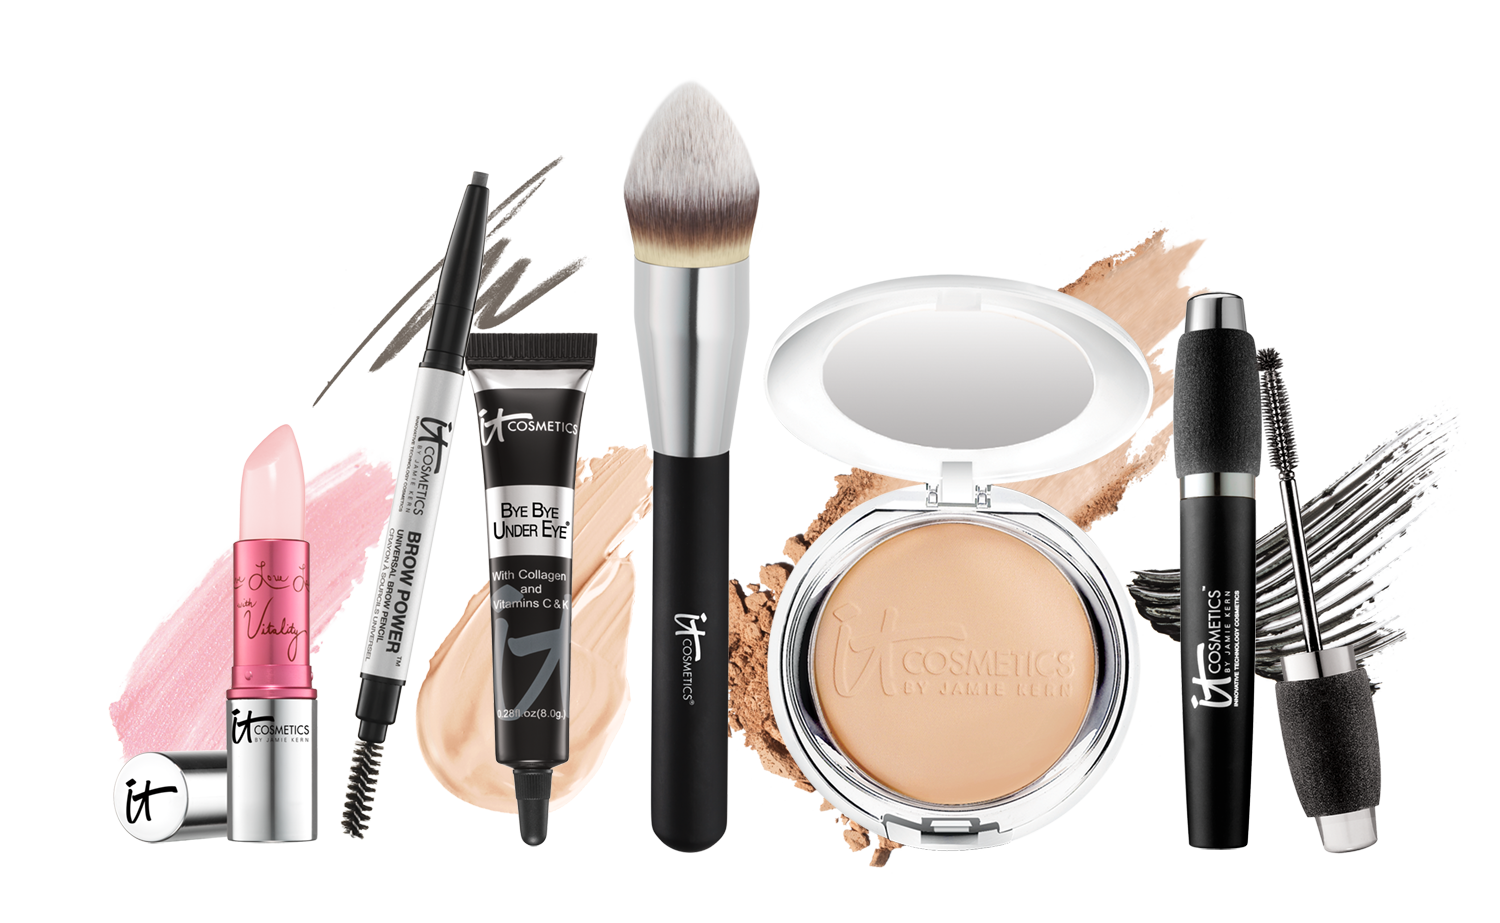 Review, Shades: IT Cosmetics Holiday 2015 Makeup Collection, Best-Selling  QVC Products, Eyeshadow Palettes, Lip Sets - Makeup Kit Products PNG